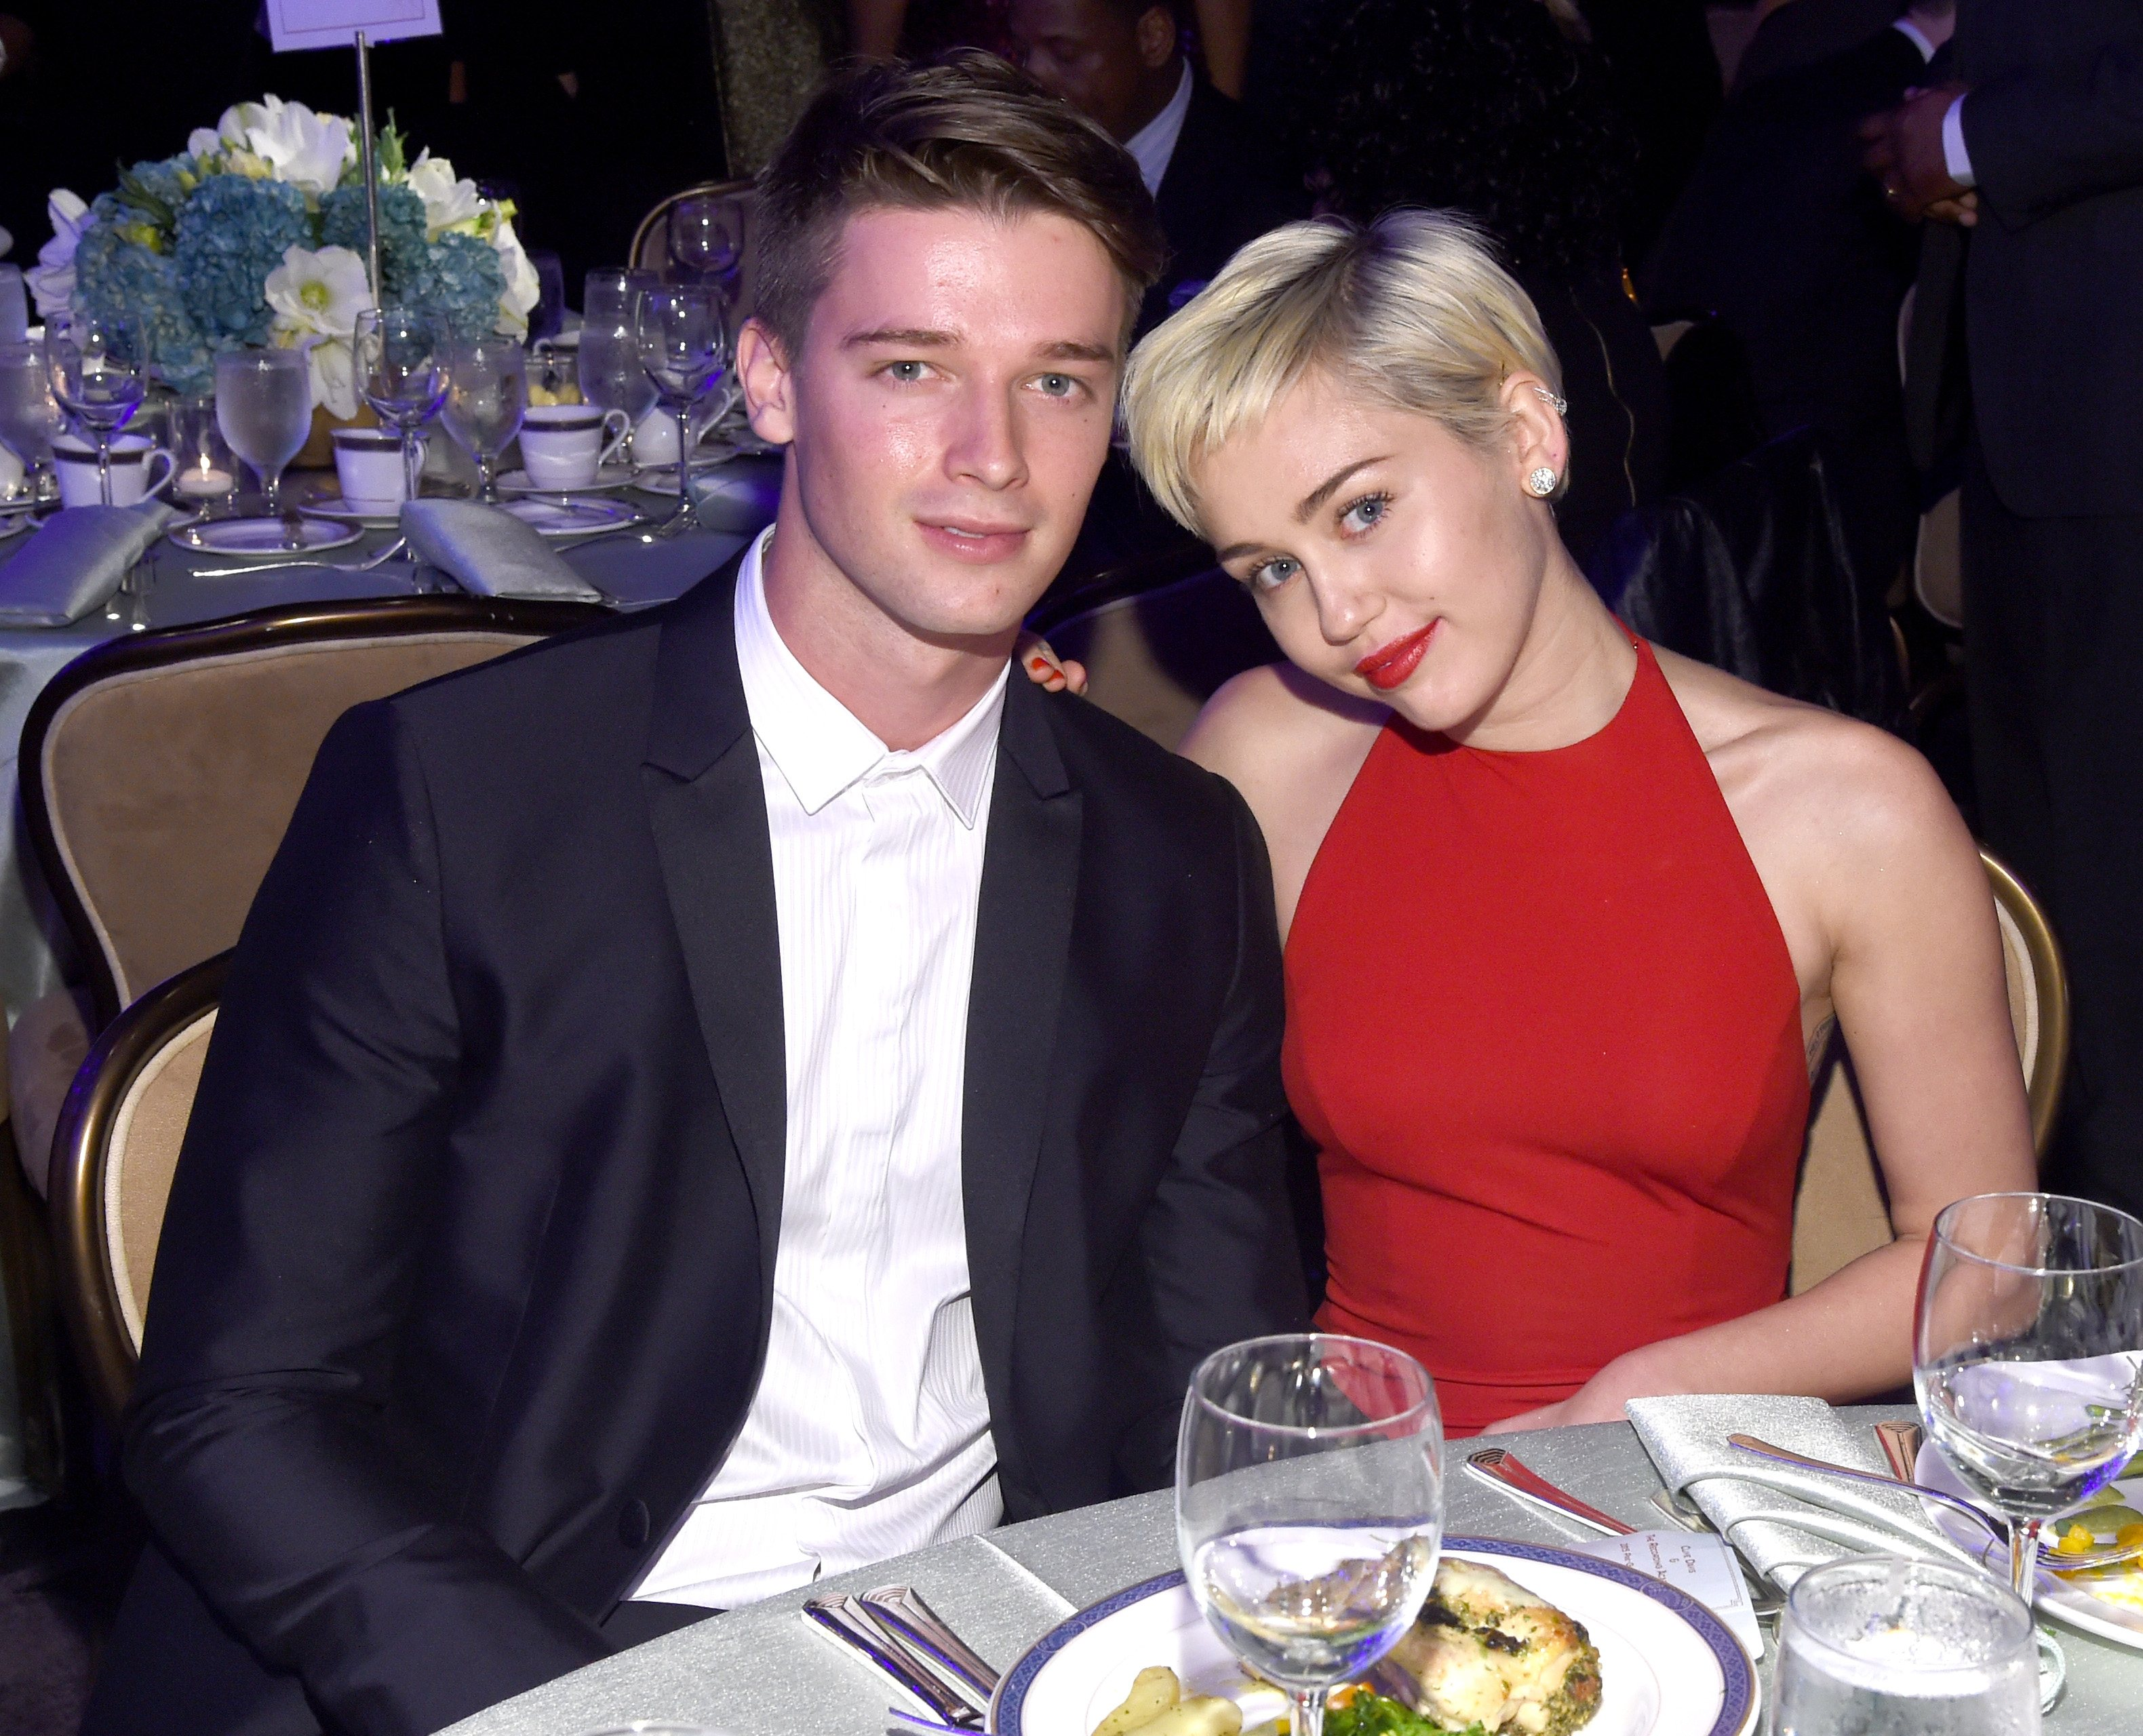 Miley Cyrus (R) and Patrick Schwarzenegger attend the Pre-GRAMMY Gala and Salute to Industry Icons